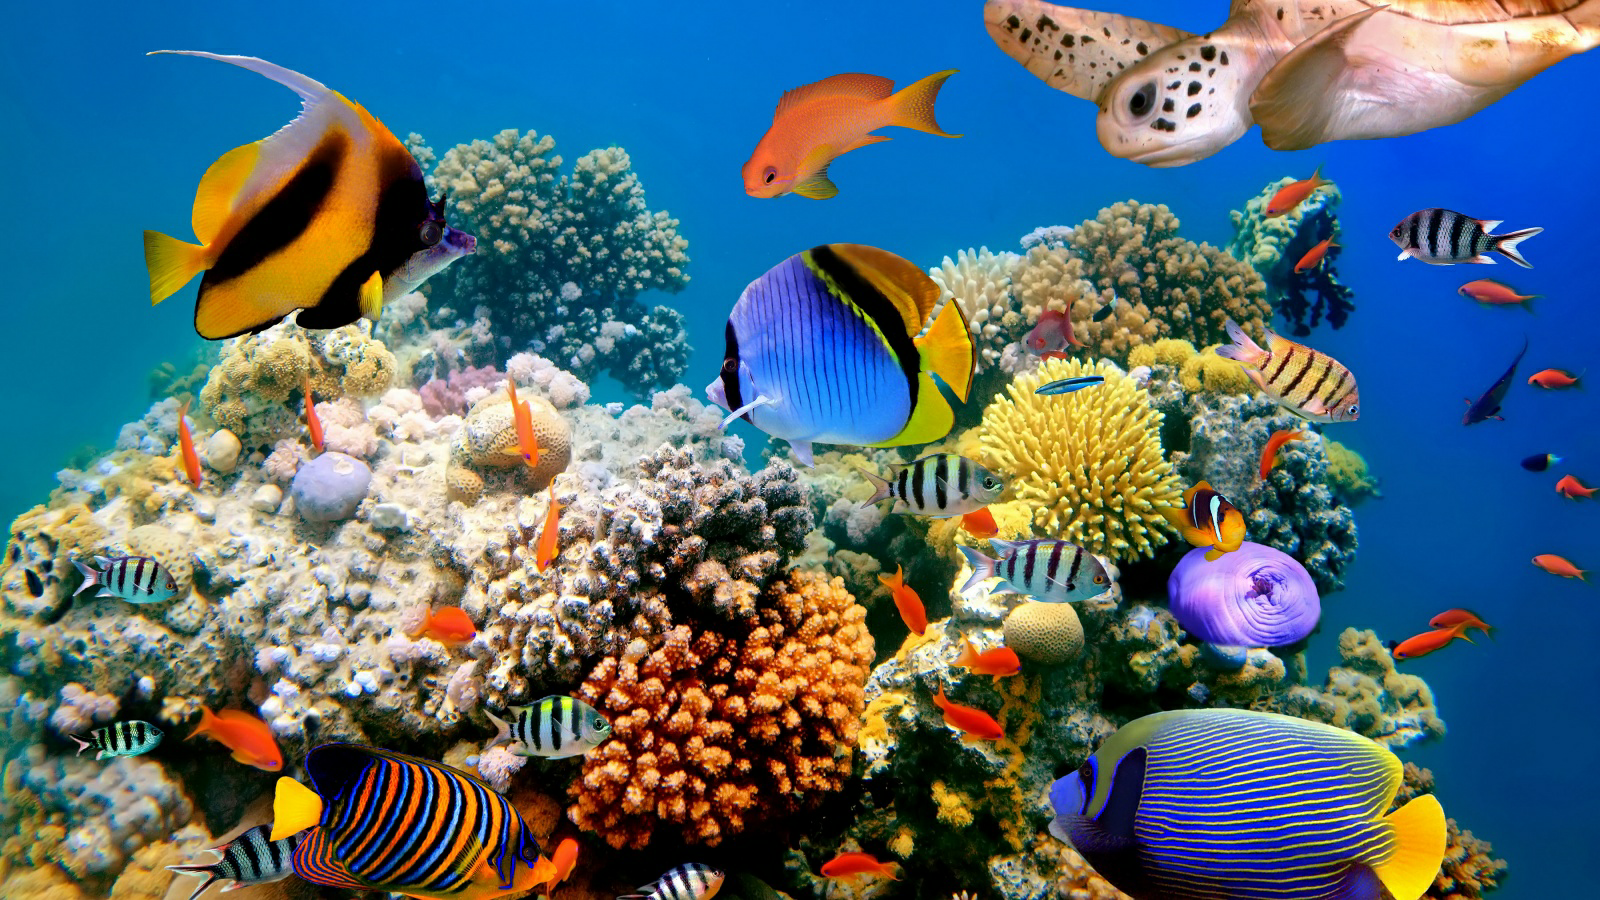 Under The Sea Wallpapercase Free Hd Wallpapers Underwater Wallpaper Underwater Fish Tropical Fish